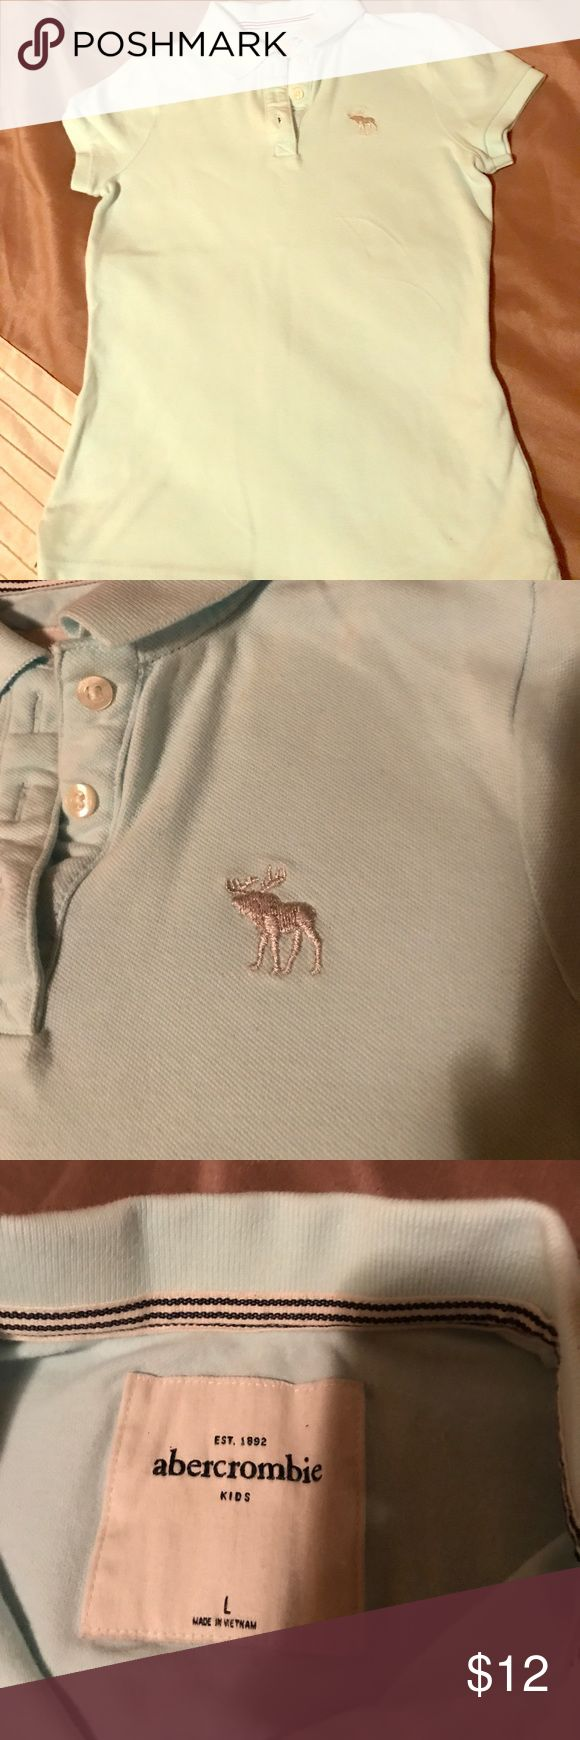 Girls like new Abercrombie polo size large I love this too my daughter wore it once no stains  no signs of wear comes from a non smoking home no pets like new abercrombie kids Shirts & Tops Polos